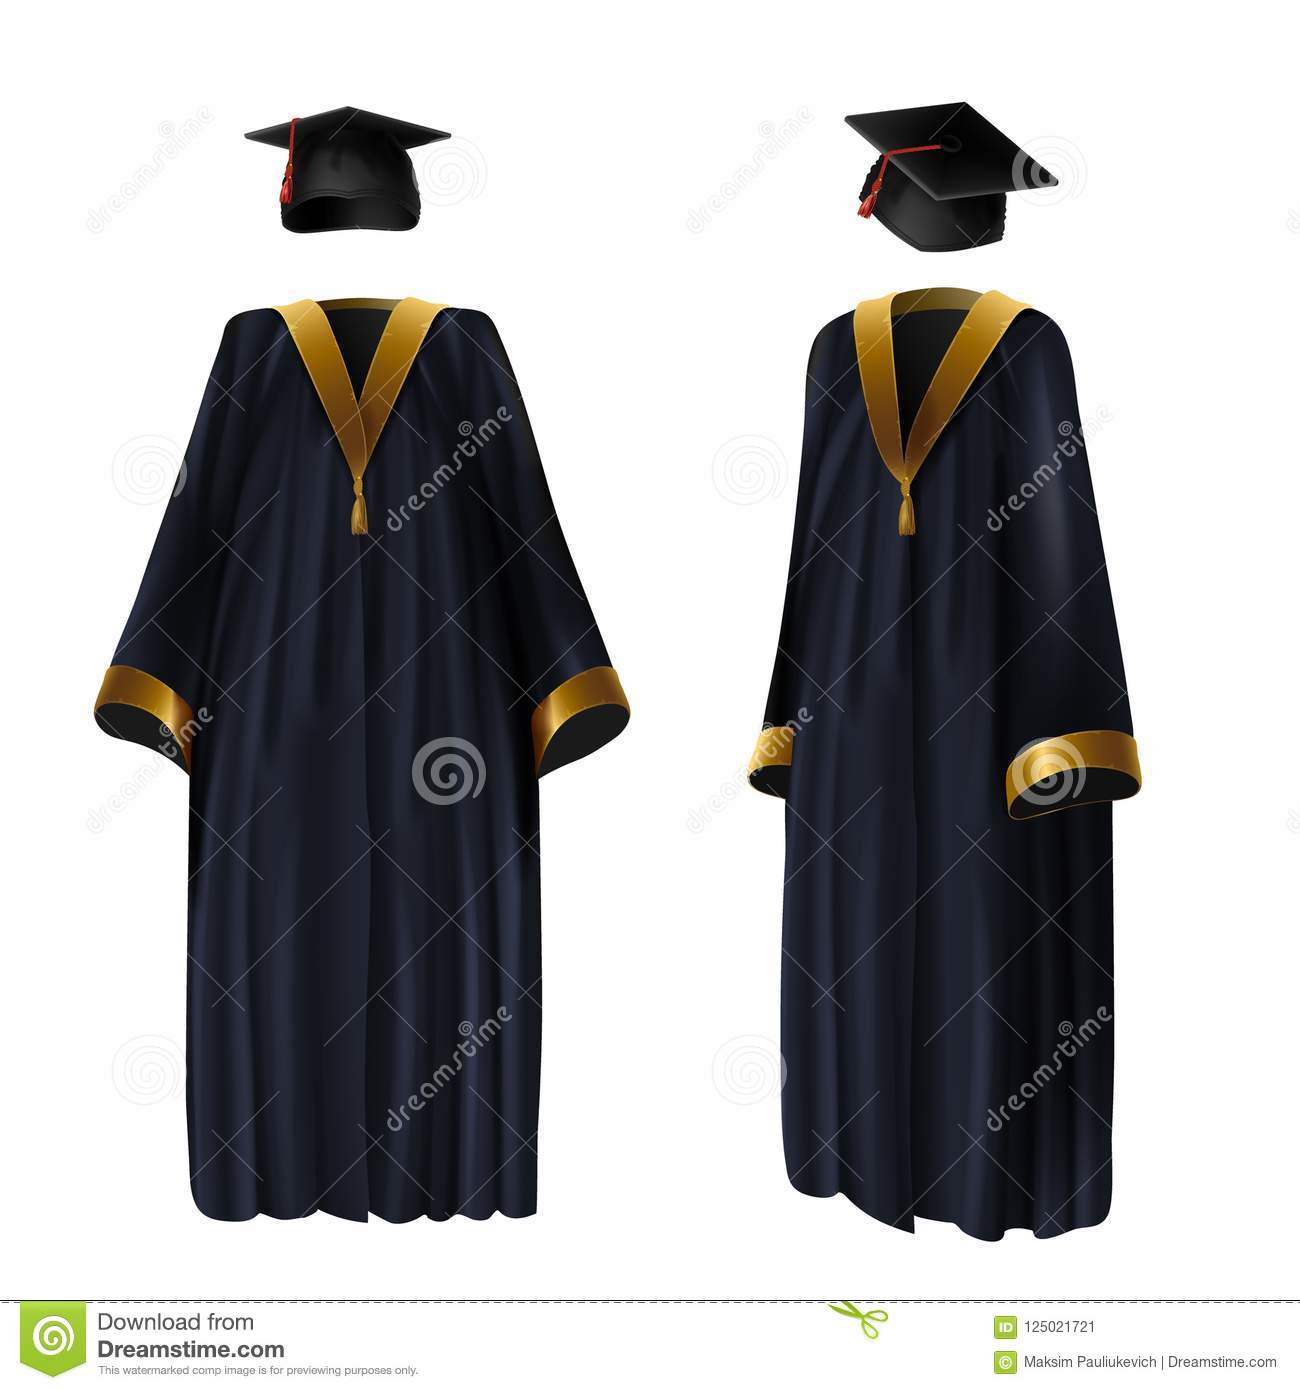 Graduation Gown Design | www.topsimages.com